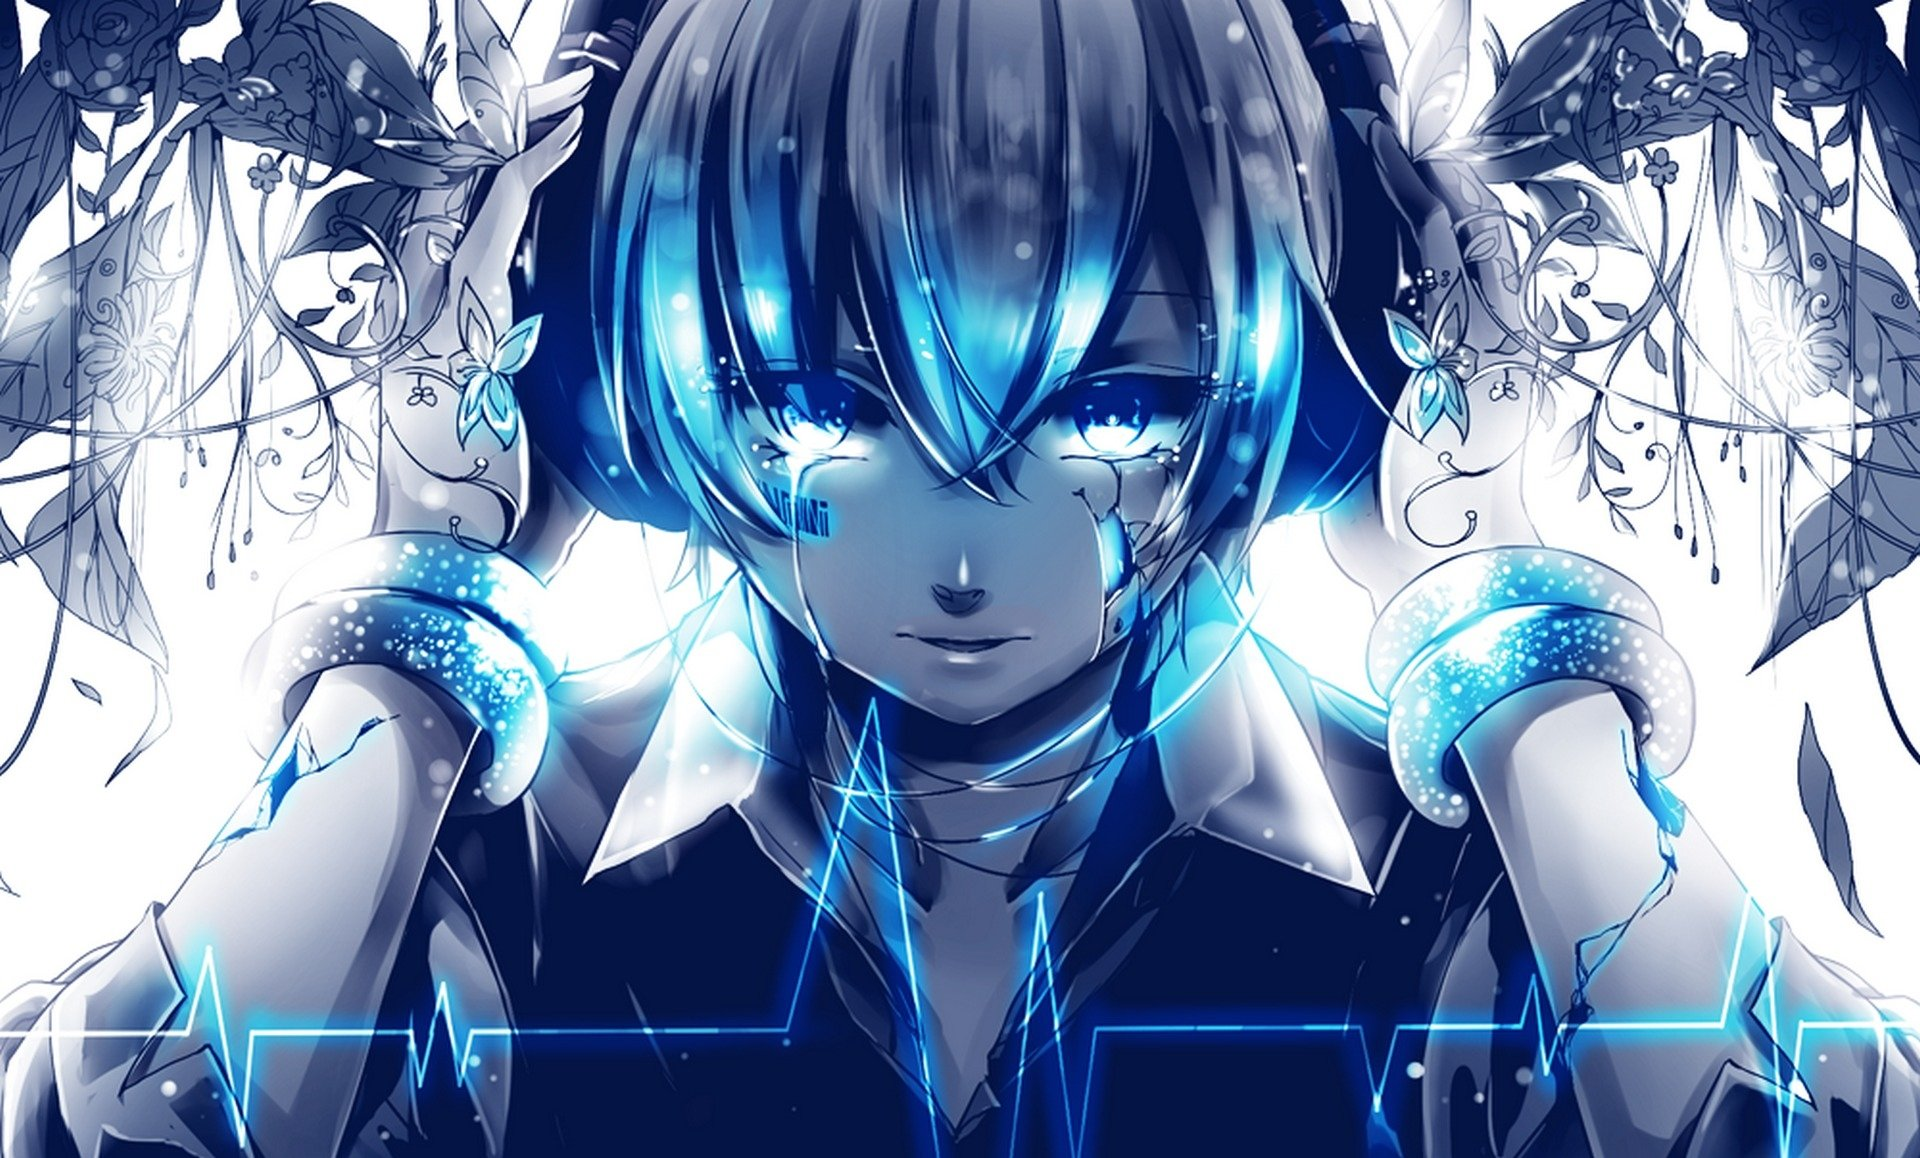 Vocaloid full hd wallpaper and background image - Blue anime wallpaper ...